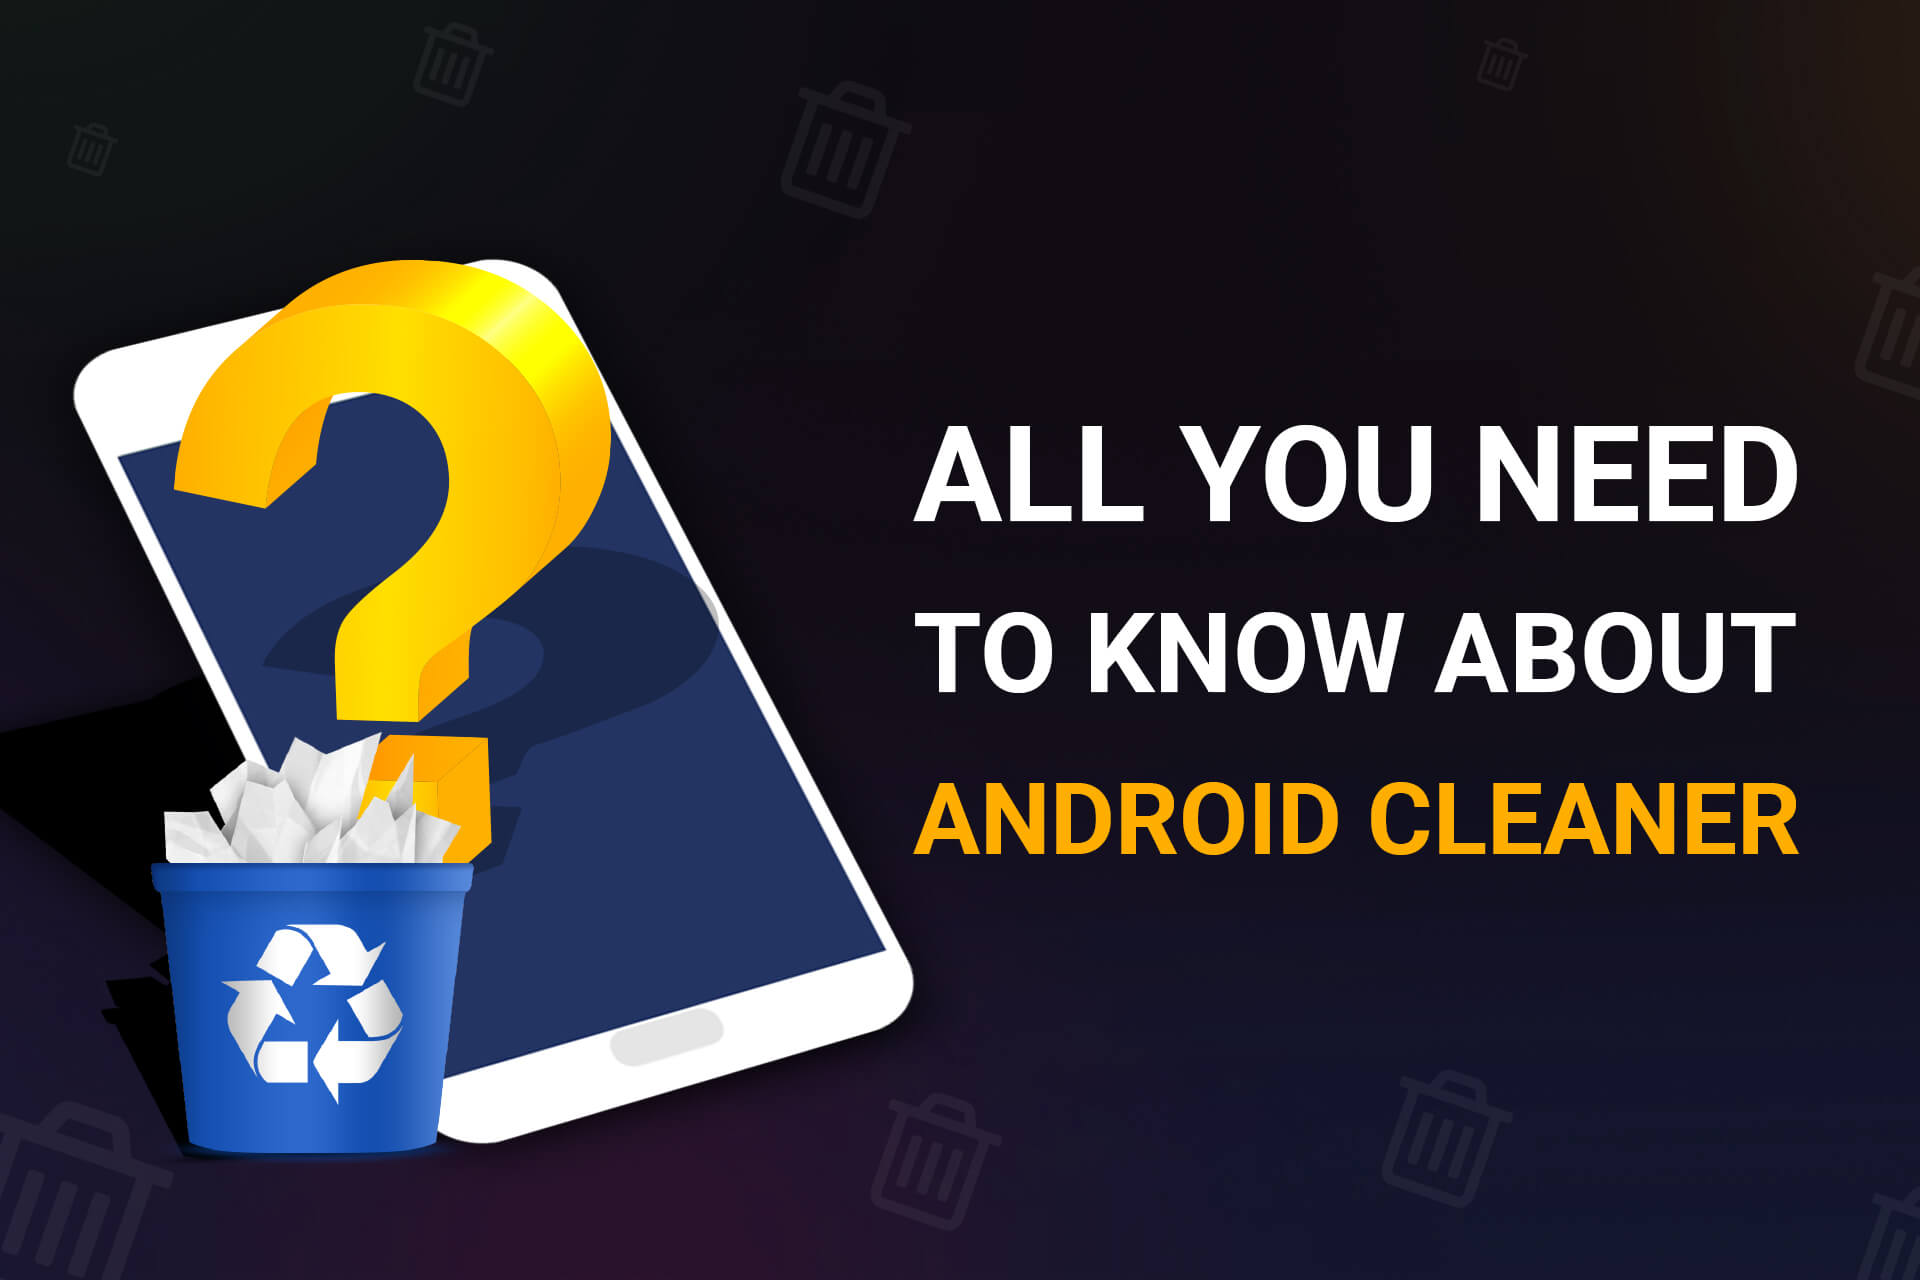 About-Android-Cleaner